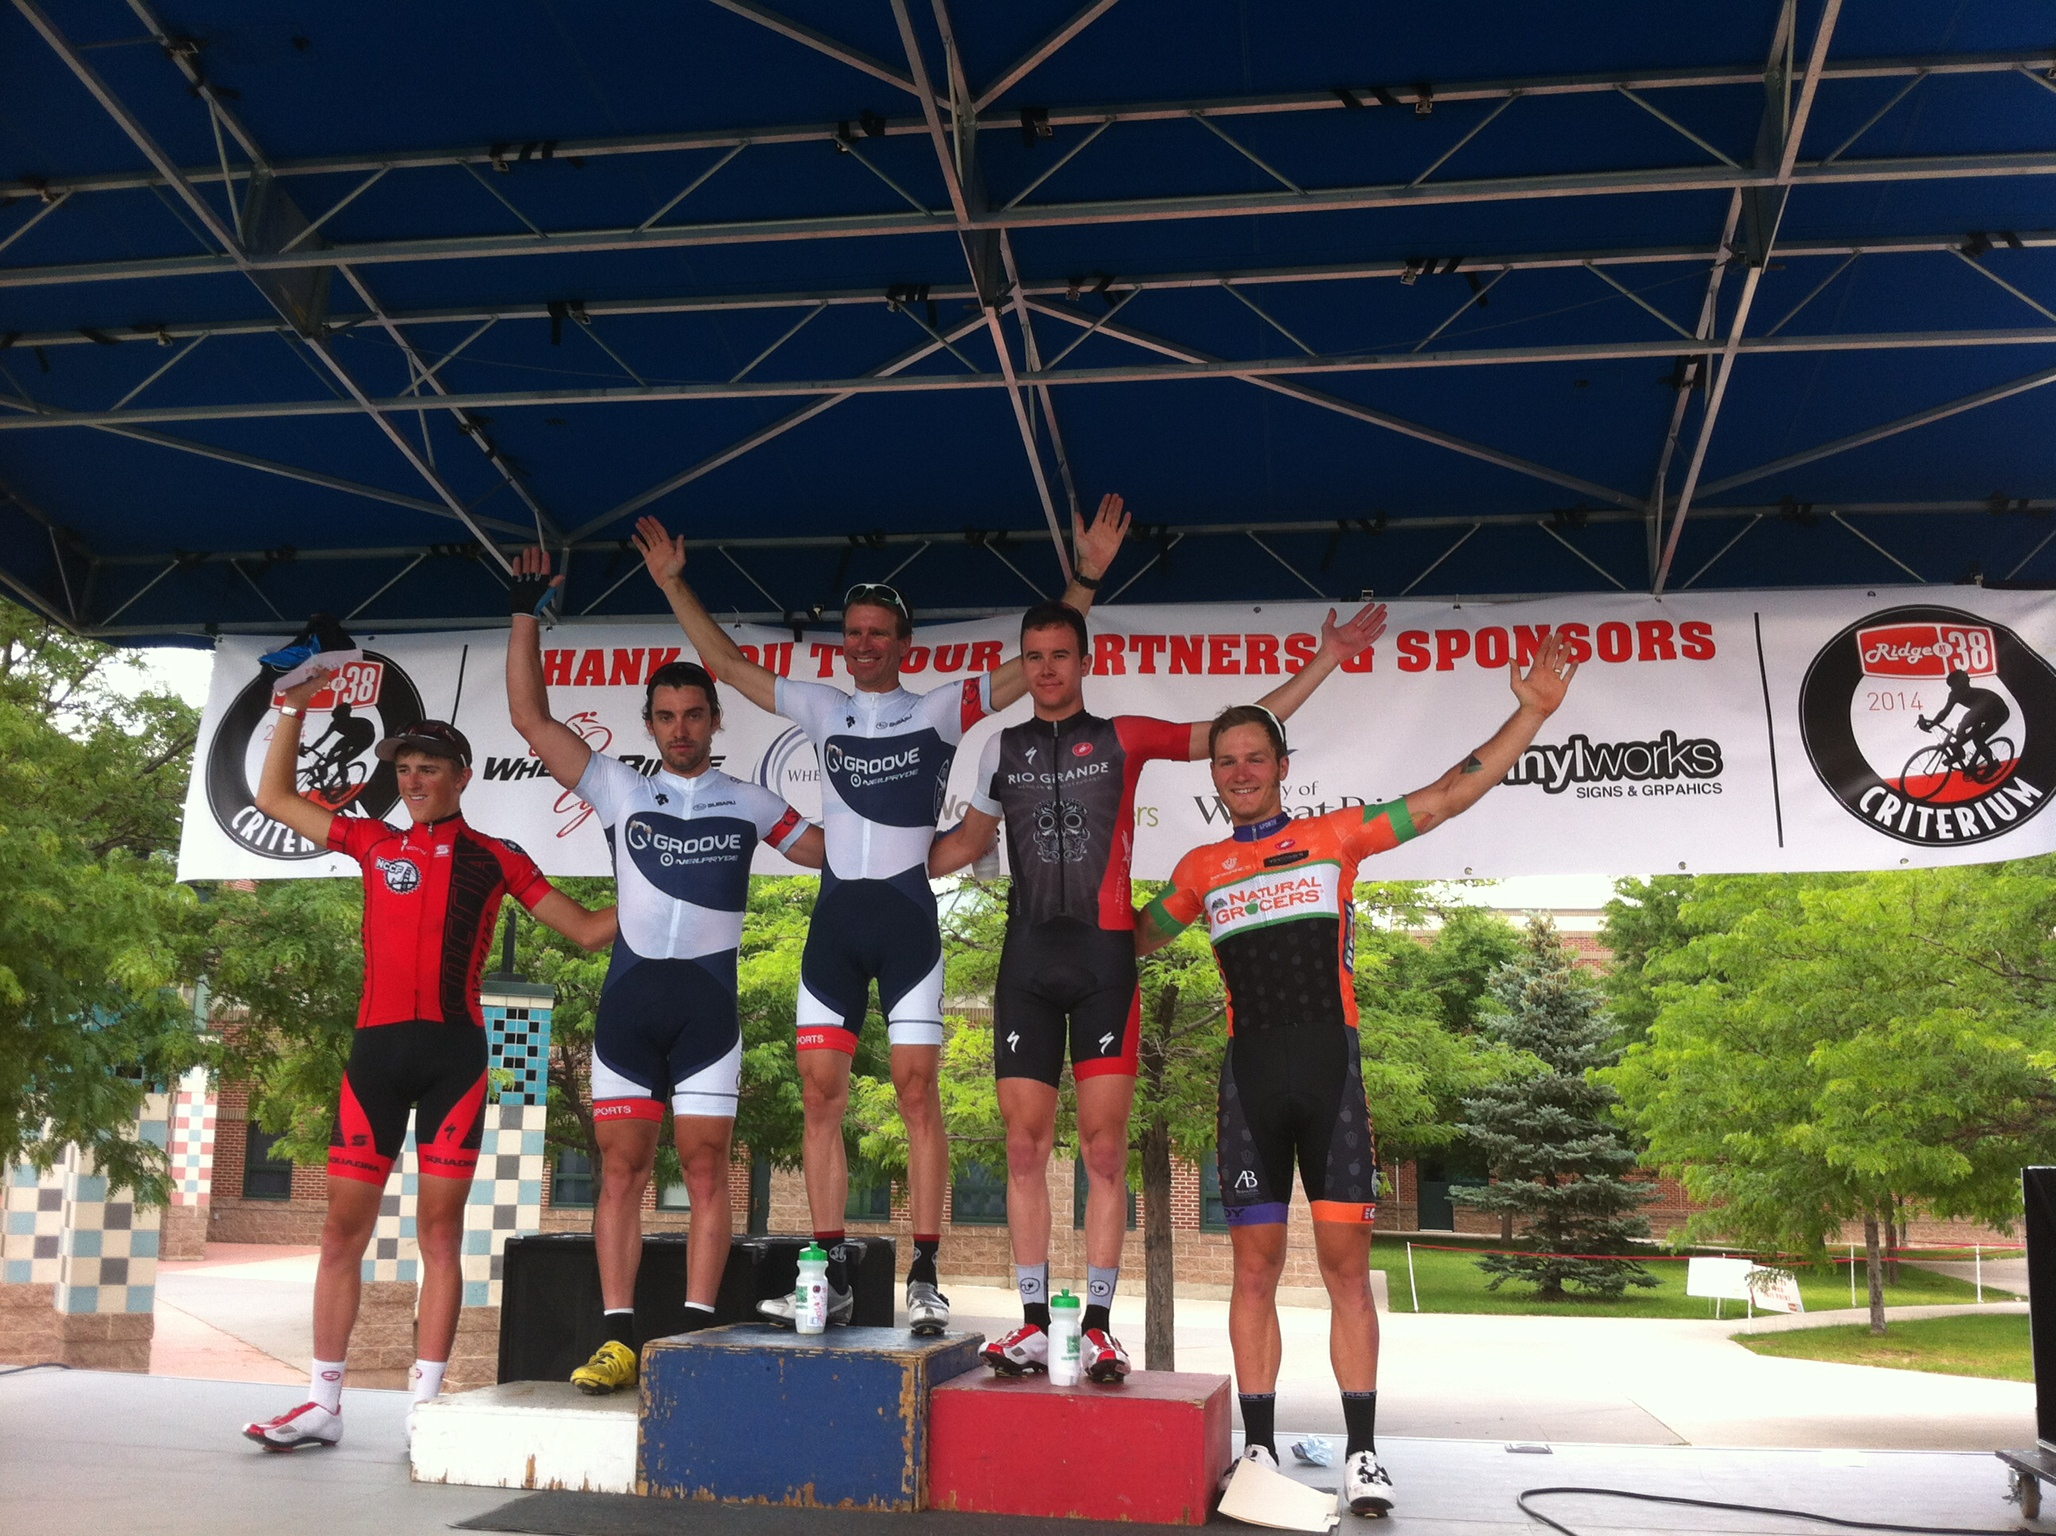 06 Wheat Ridge Criterium June 22nd Photo1.jpg